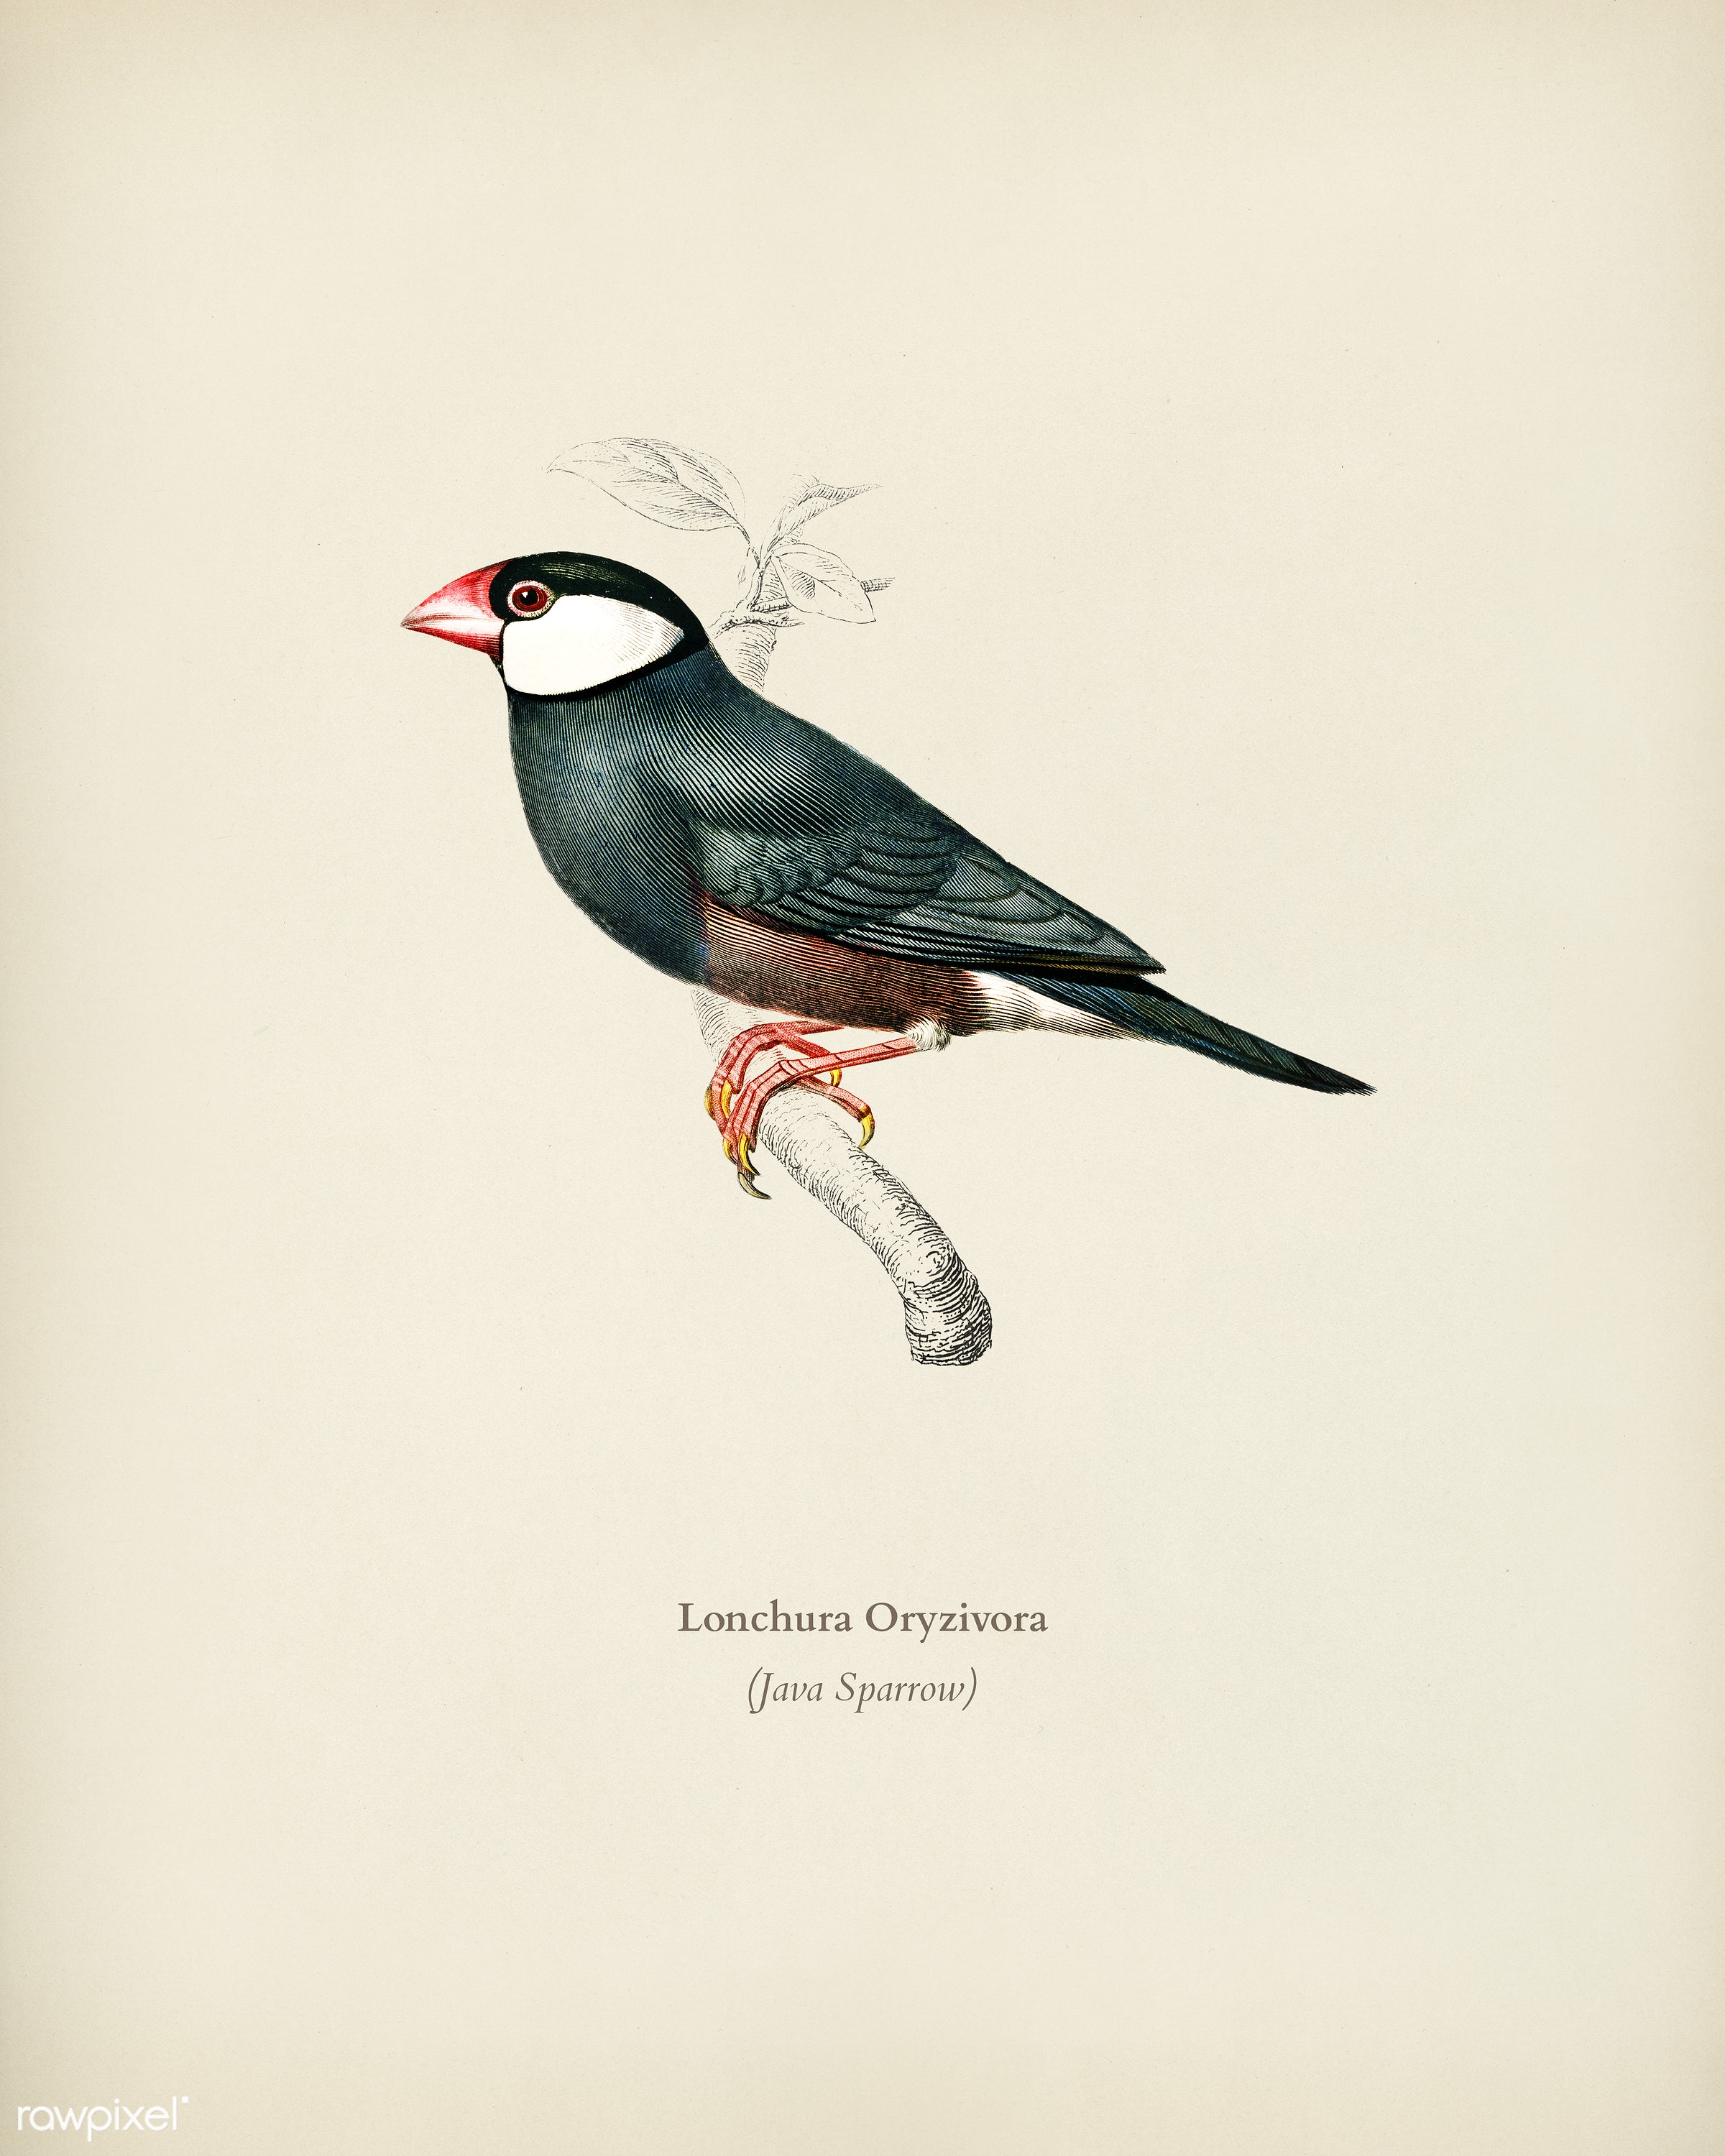 Java Sparrow (Lonchura Oryzivora) illustrated by Charles Dessalines D' Orbigny (1806-1876). Digitally enhanced from our...